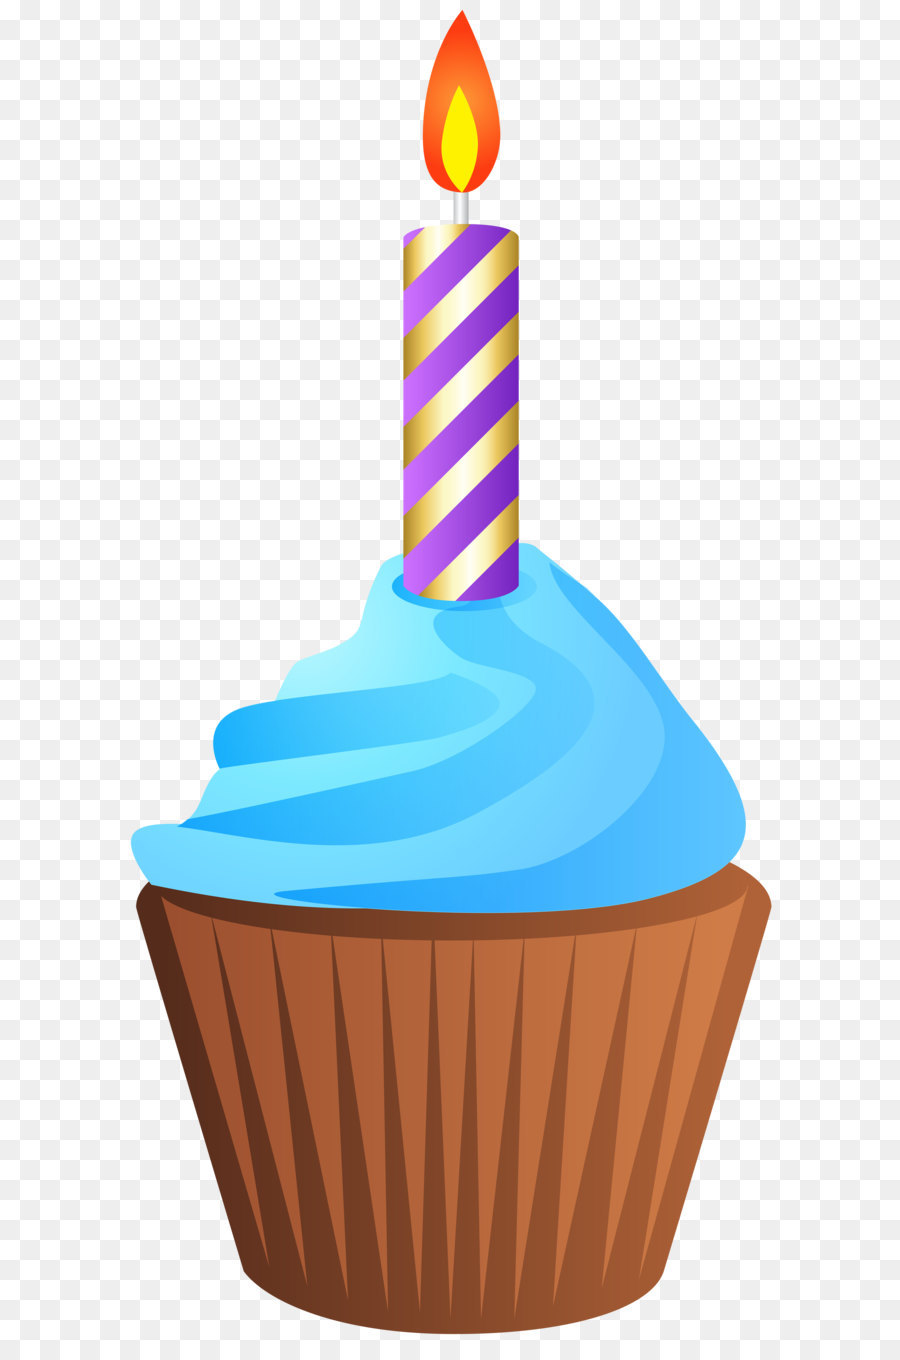 muffin birthday cake clip art birthday muffin with candle rh kisspng com